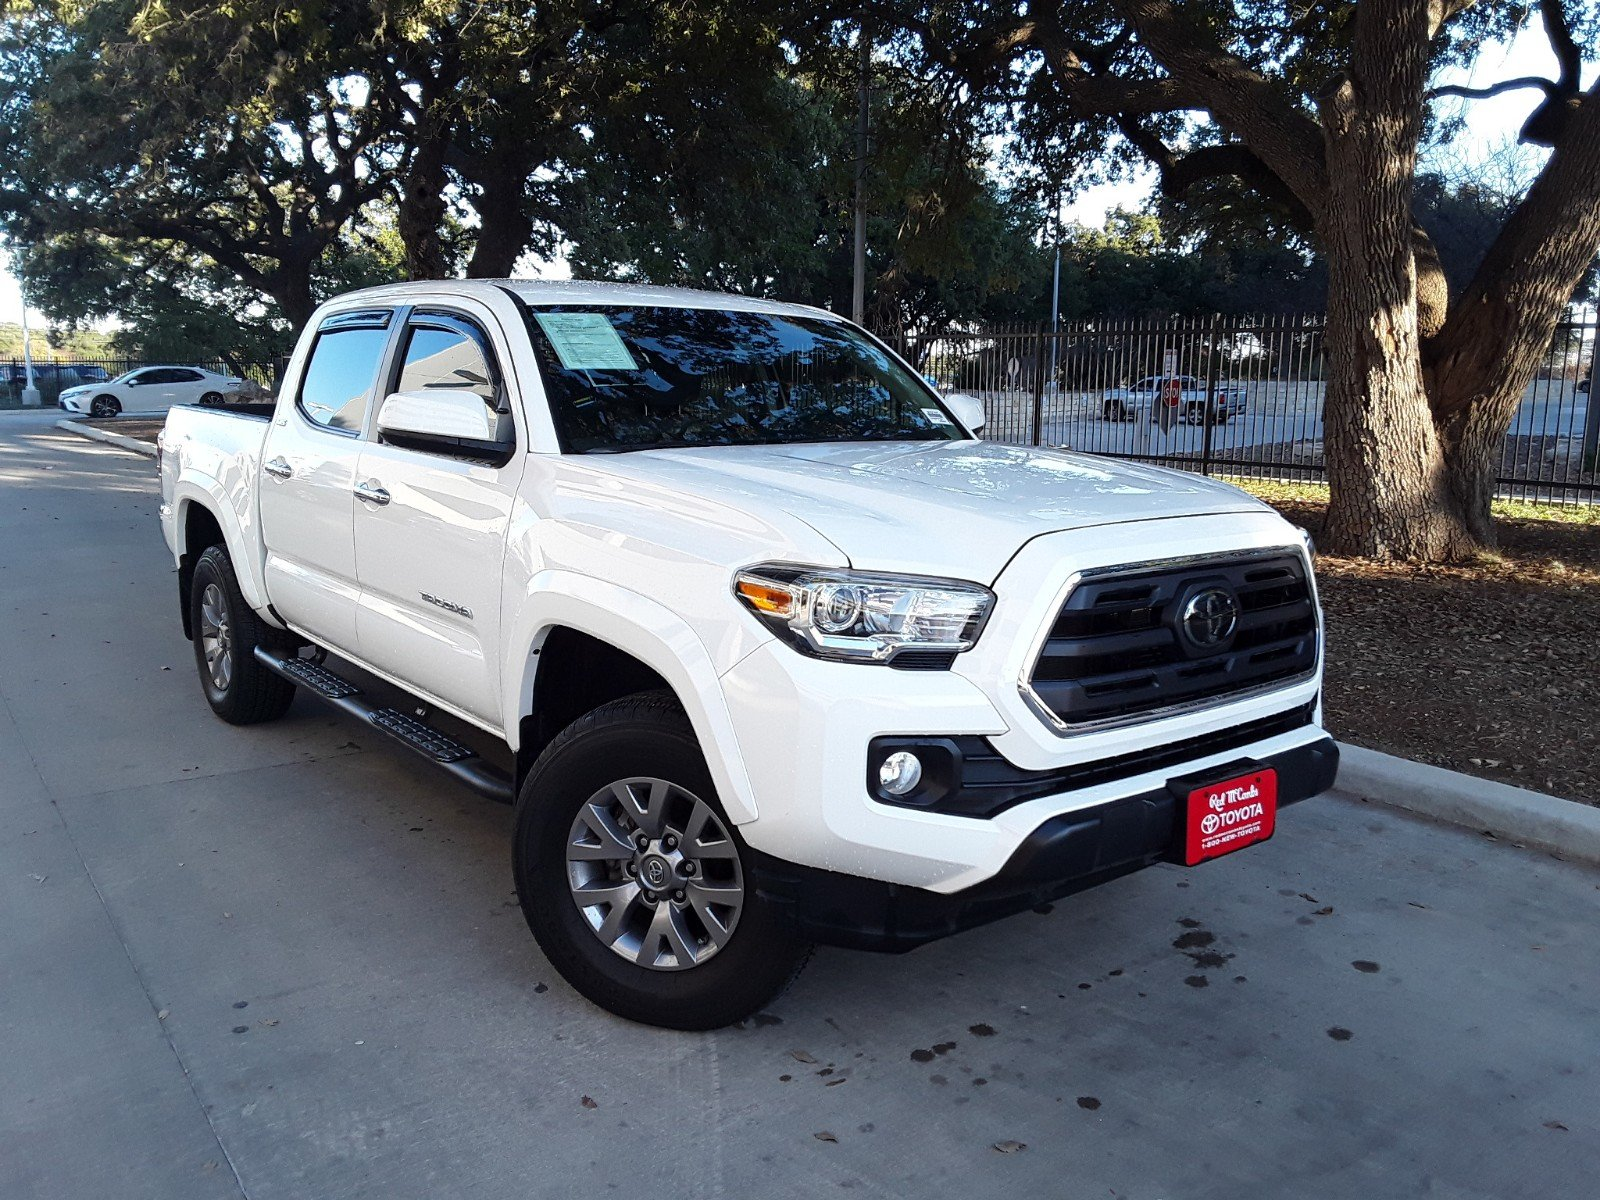 Used toyota Tacoma Lovely Pre Owned 2018 toyota Ta A Sr5 Rwd Crew Cab Pickup